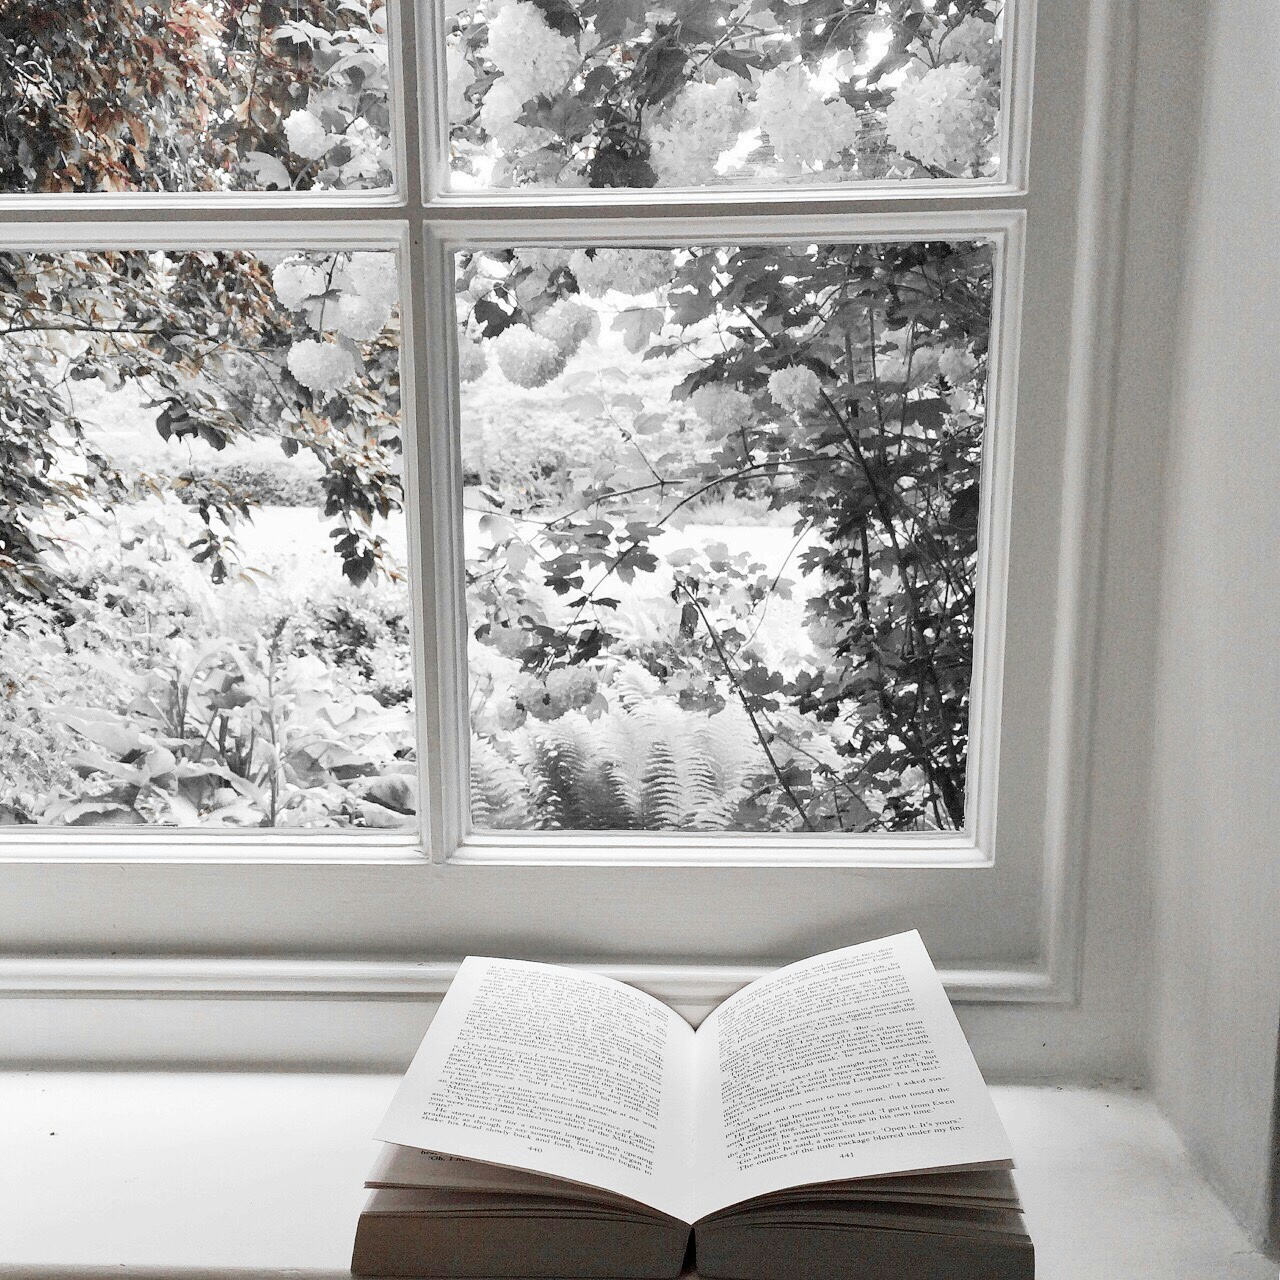 read a book, snow